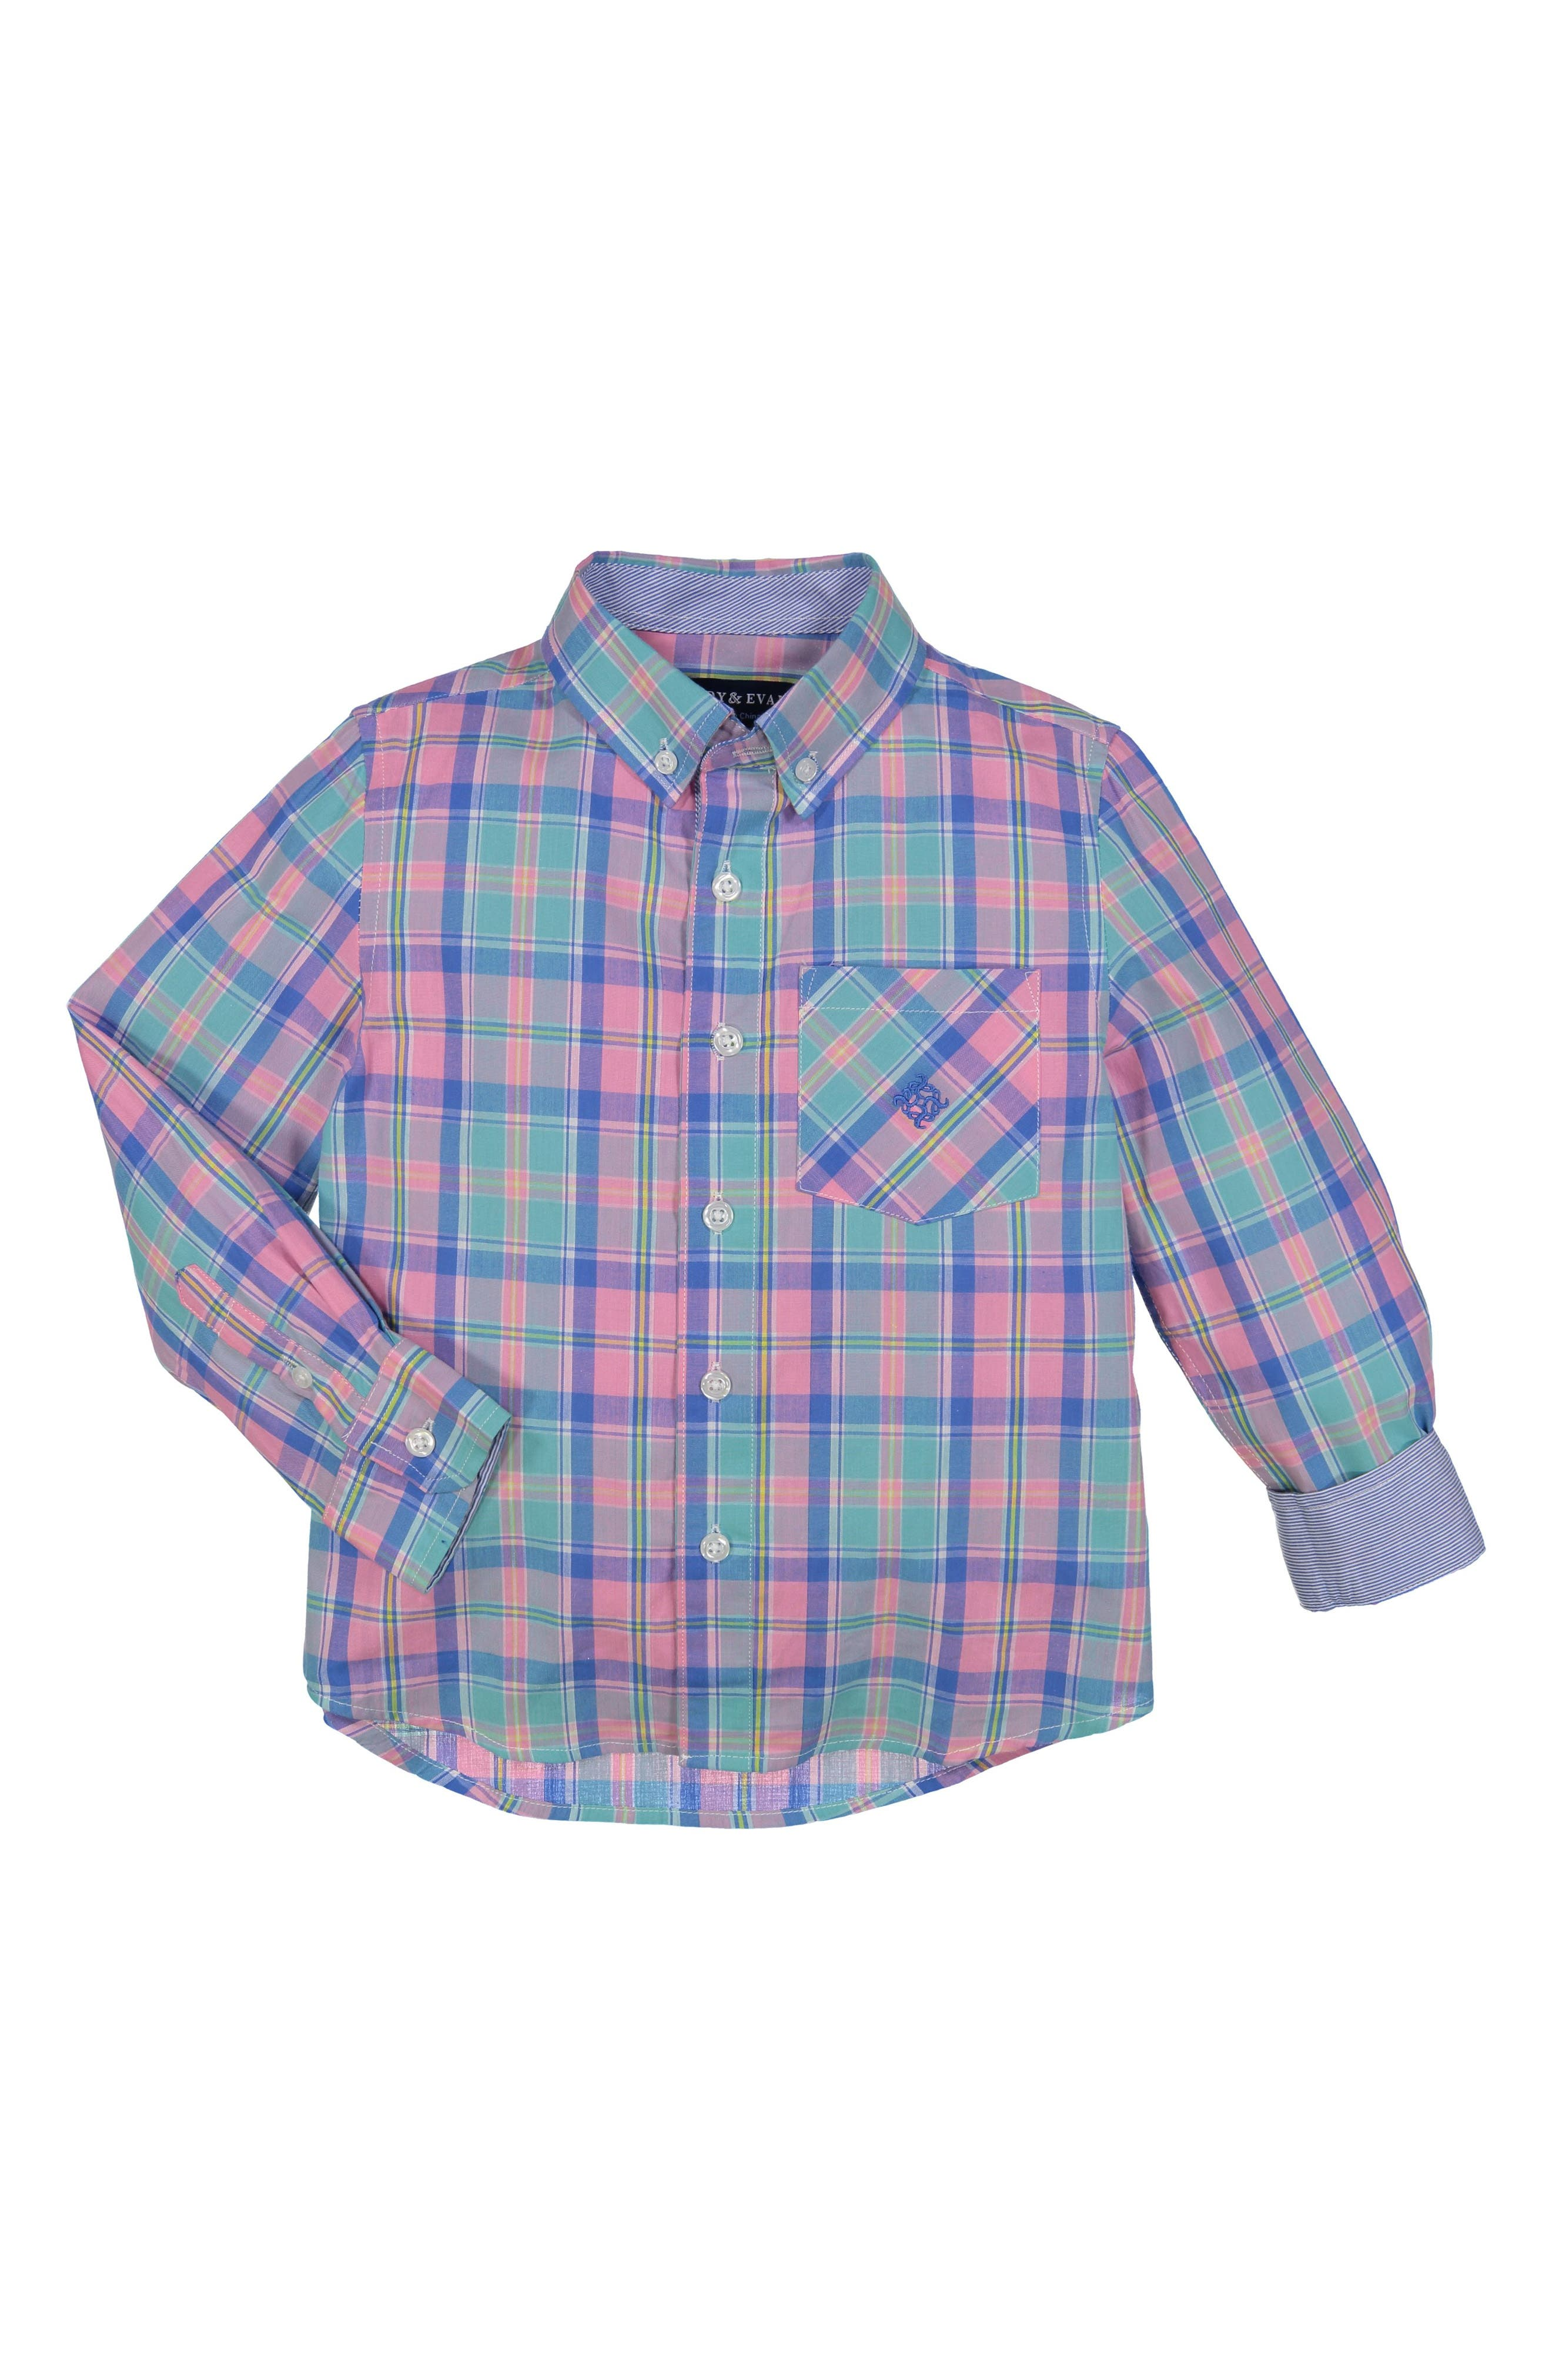 Andy & Evan Easter Plaid Woven Shirt (Toddler Boys)